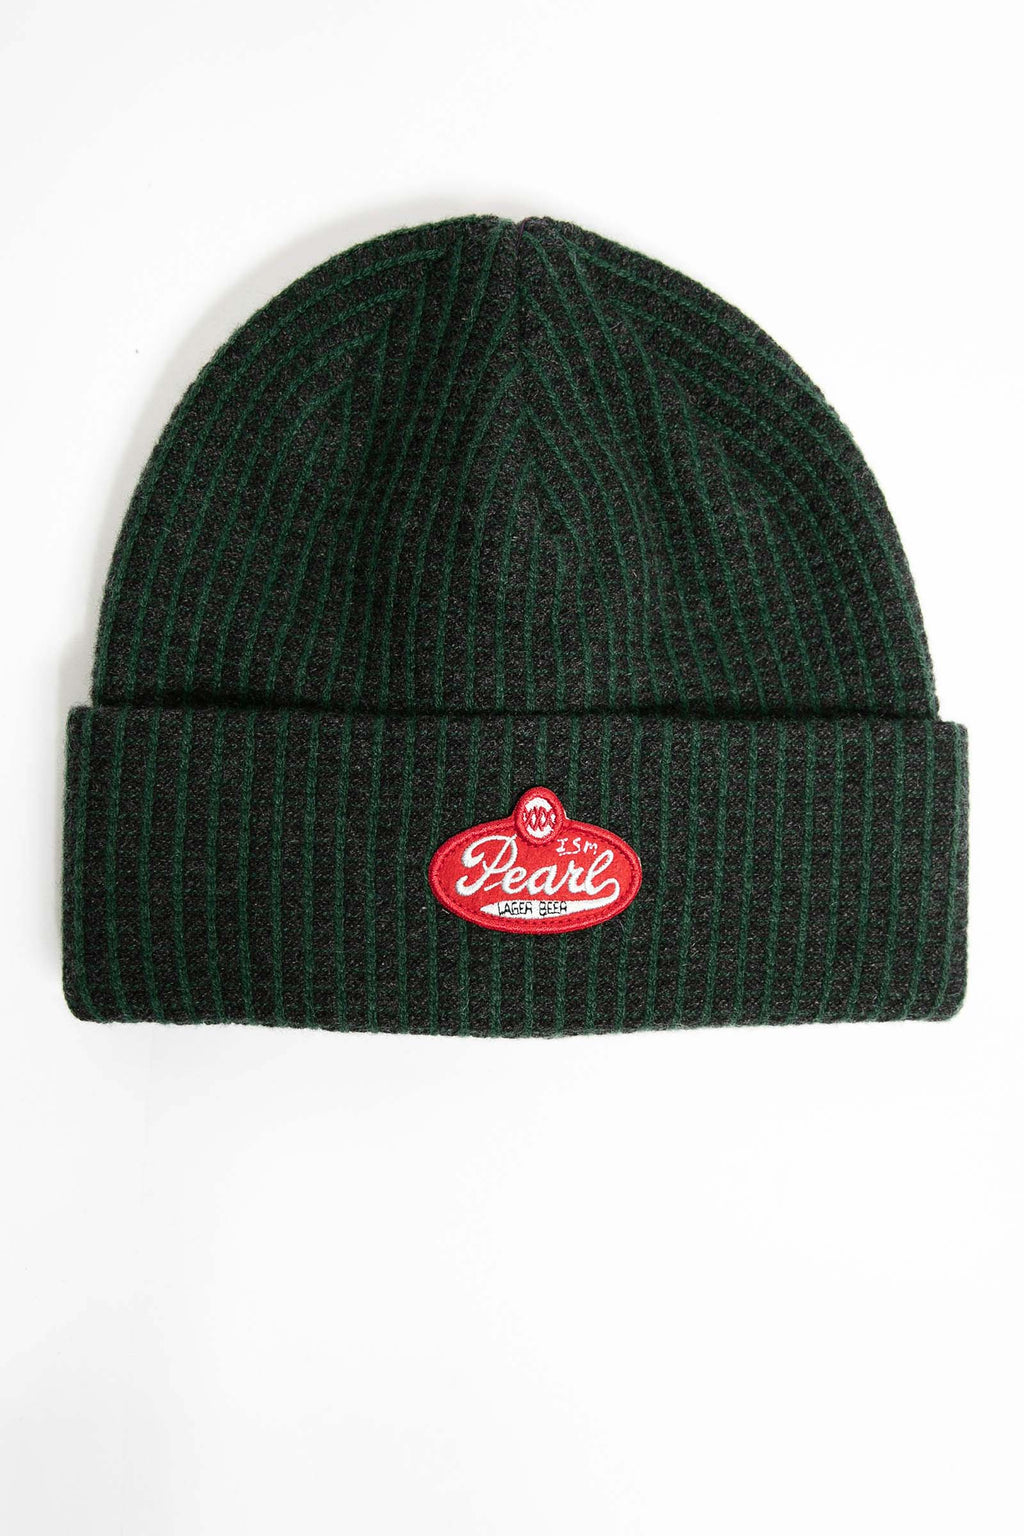 I.S.M. 'Pearl Lager' Green Cashmere Beanie